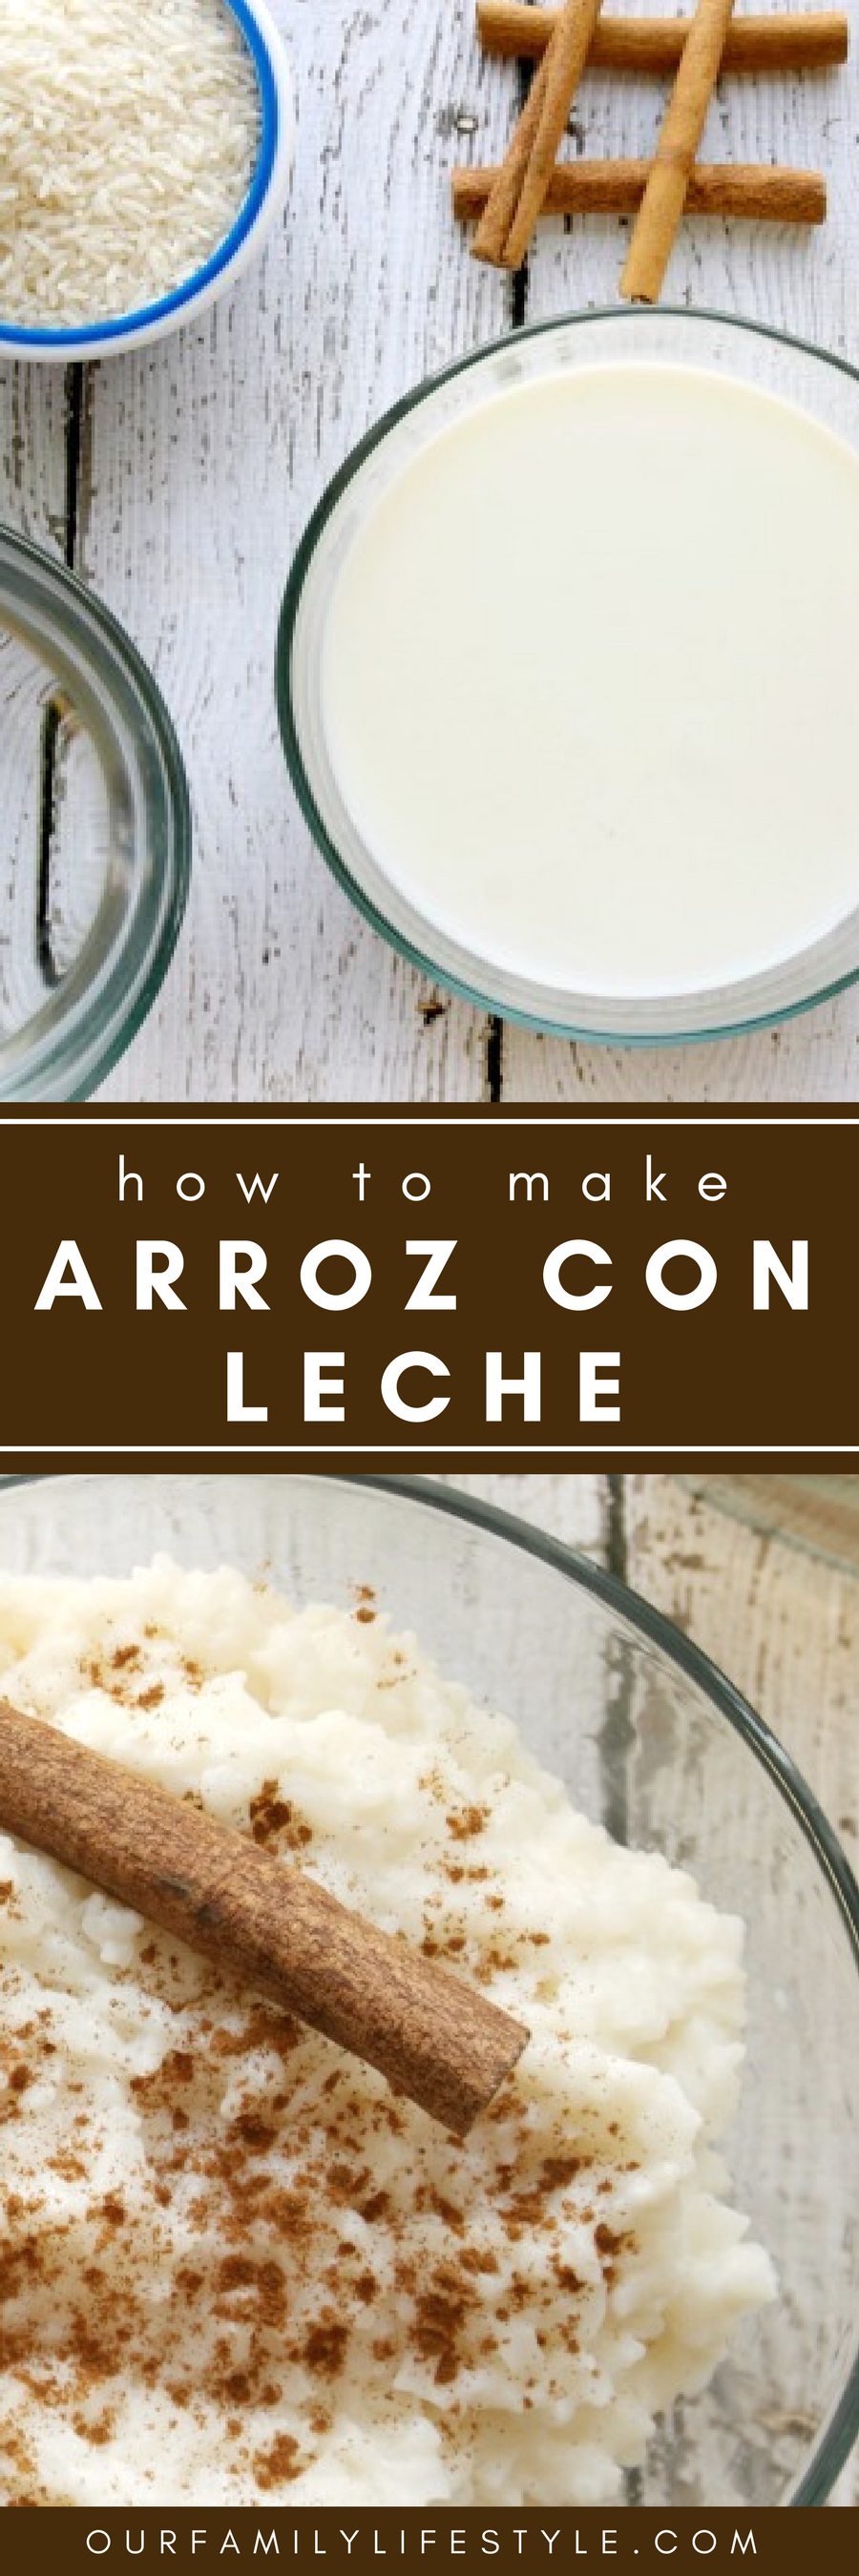 Add some rice, water, and cinnamon to a pan, and you could have an inexpensive, warm pan of Arroz con Leche sweet rice recipe to feed everyone a warm breakfast.